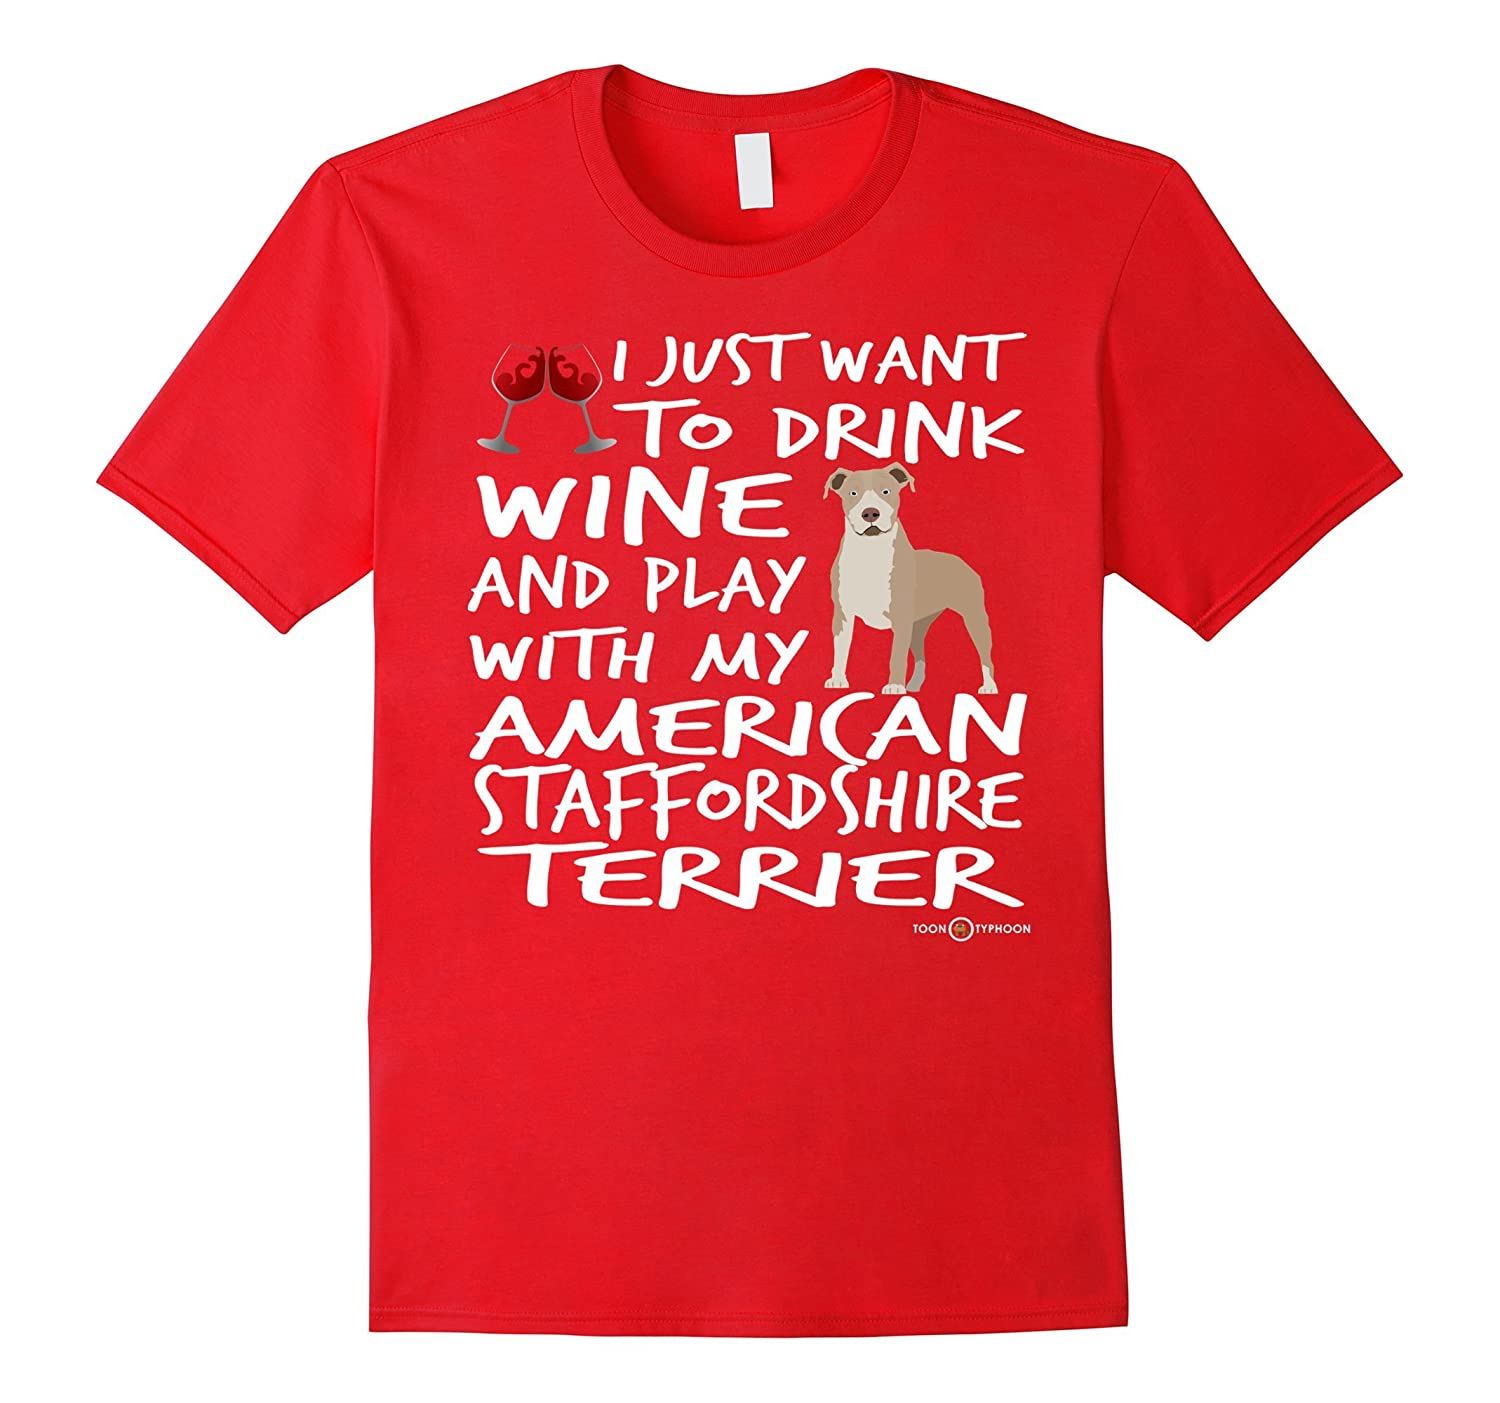 American Staffordshire Terrier Tee  Drink wine and play-TH